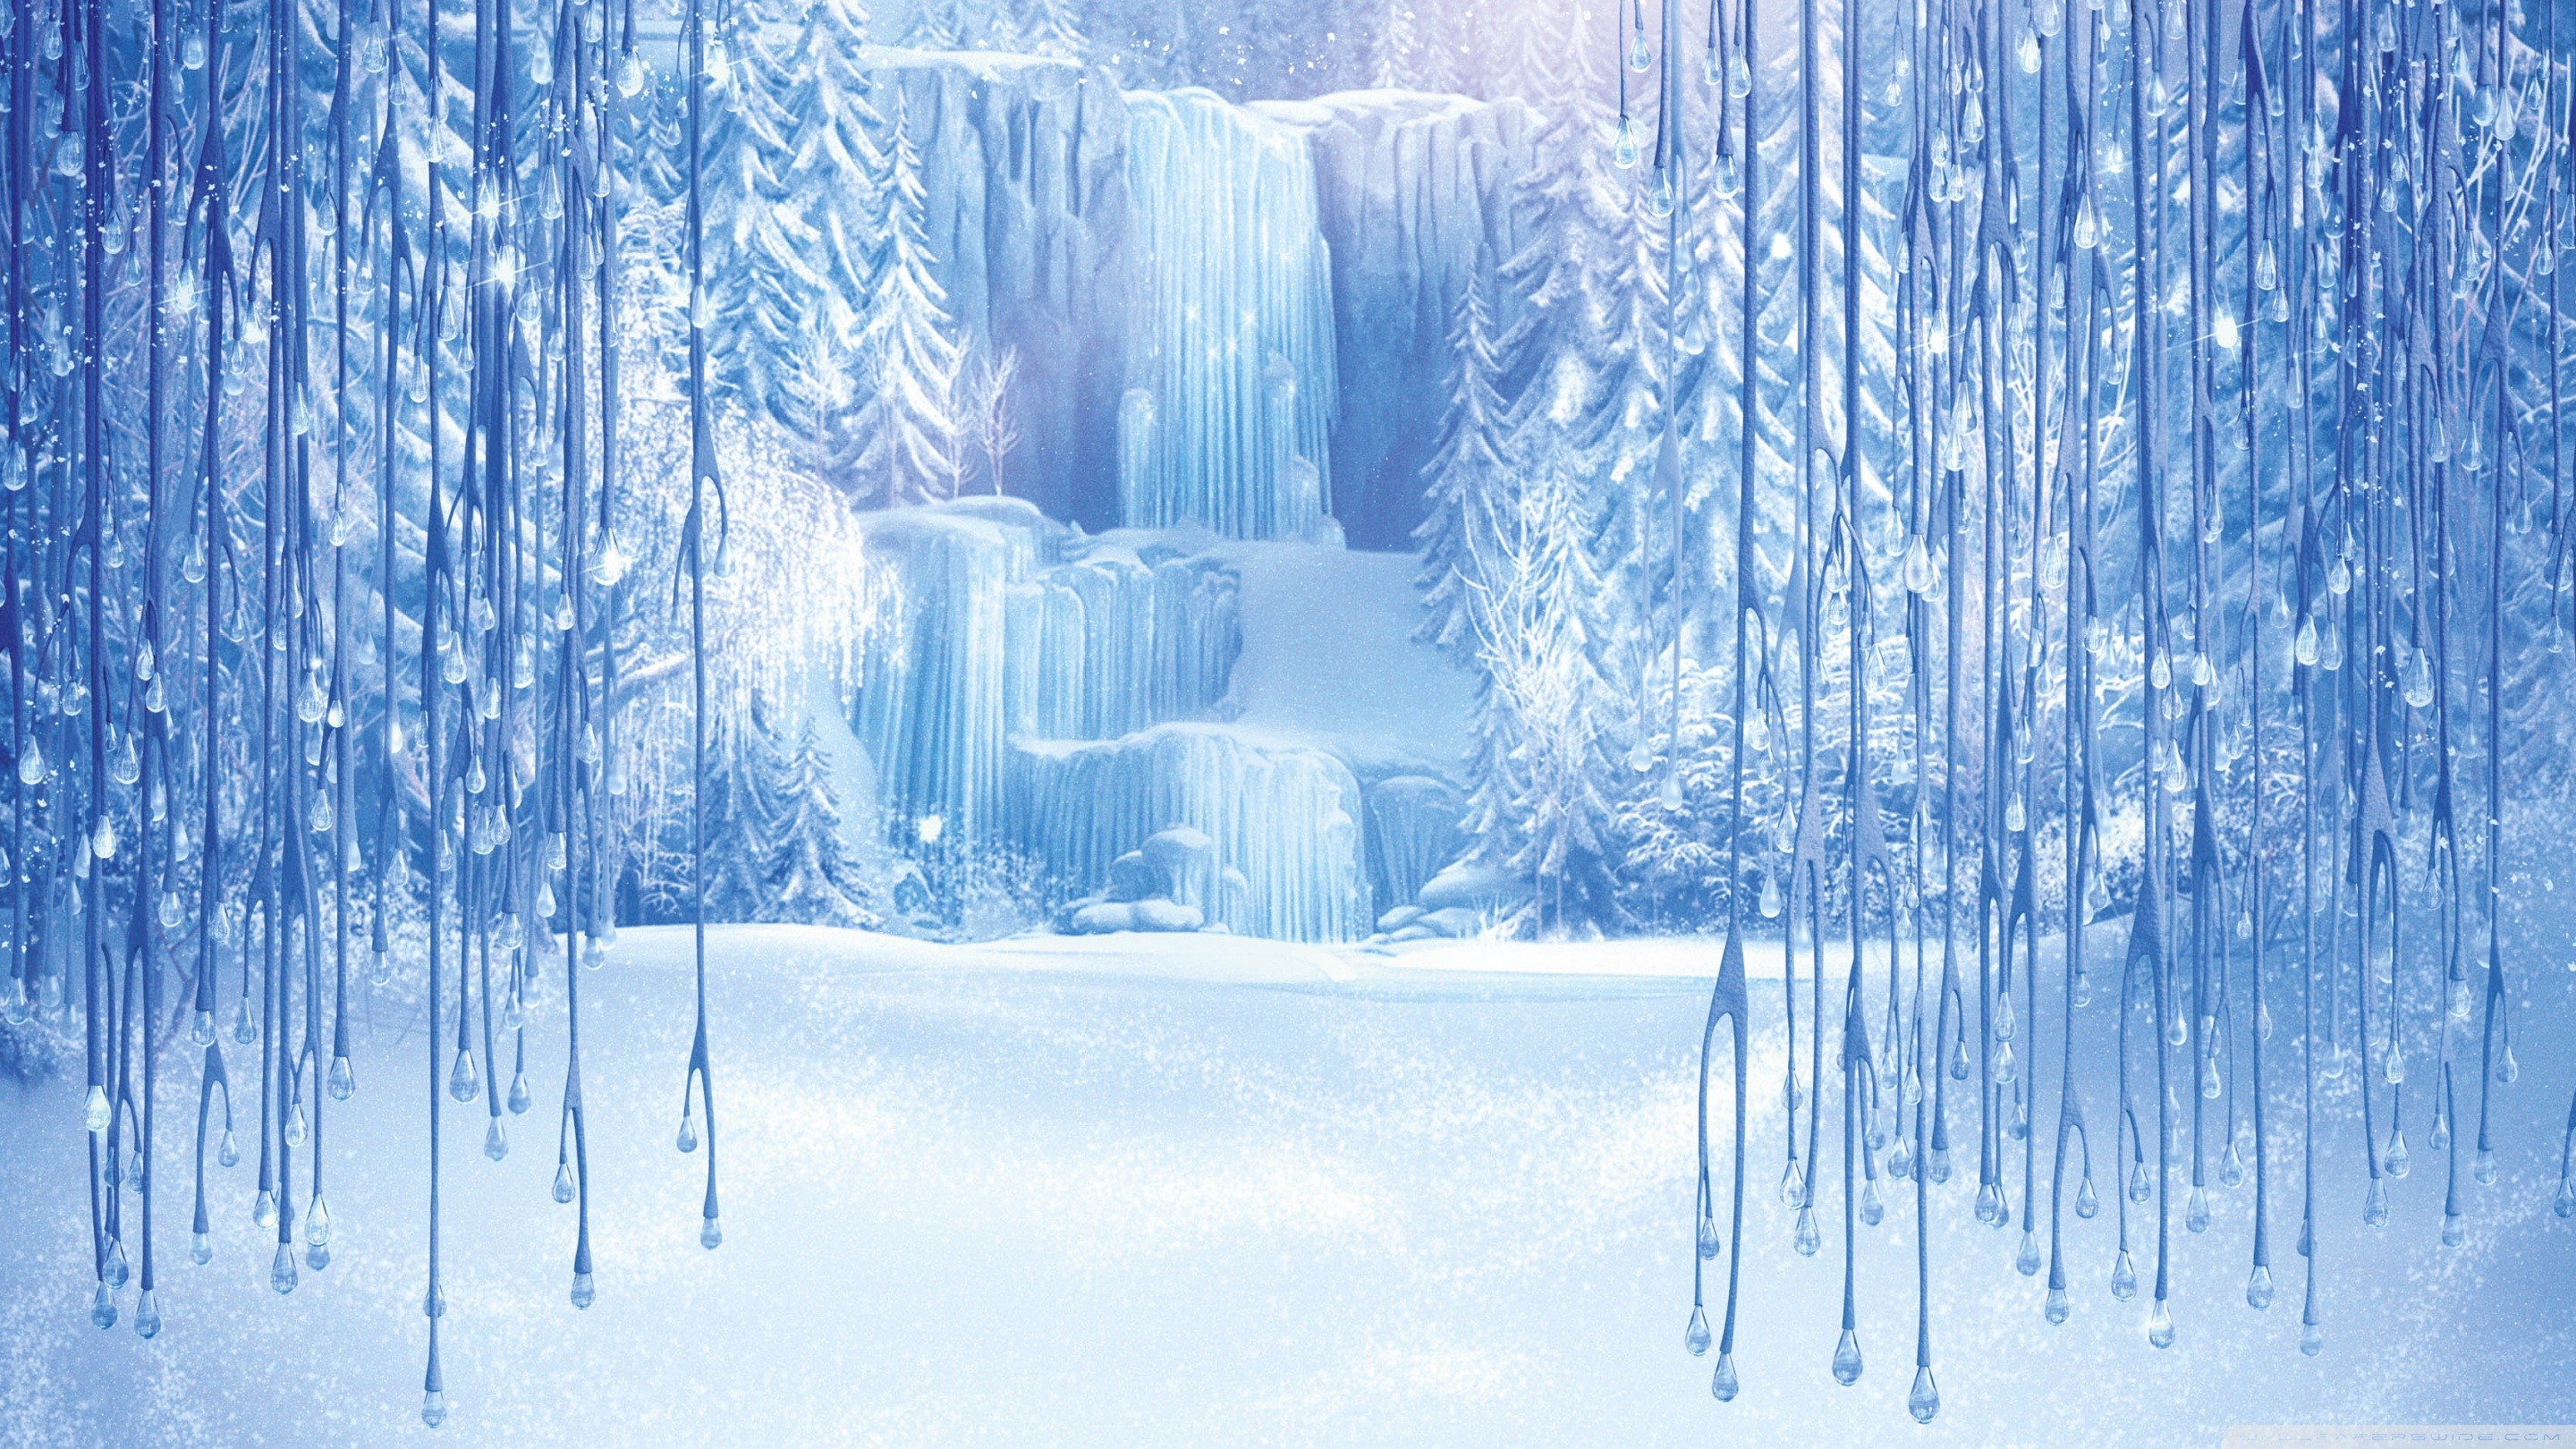 Animated Waterfalls Wallpapers Free Download Disney Frozen Wallpaper Hd Pixelstalk Net